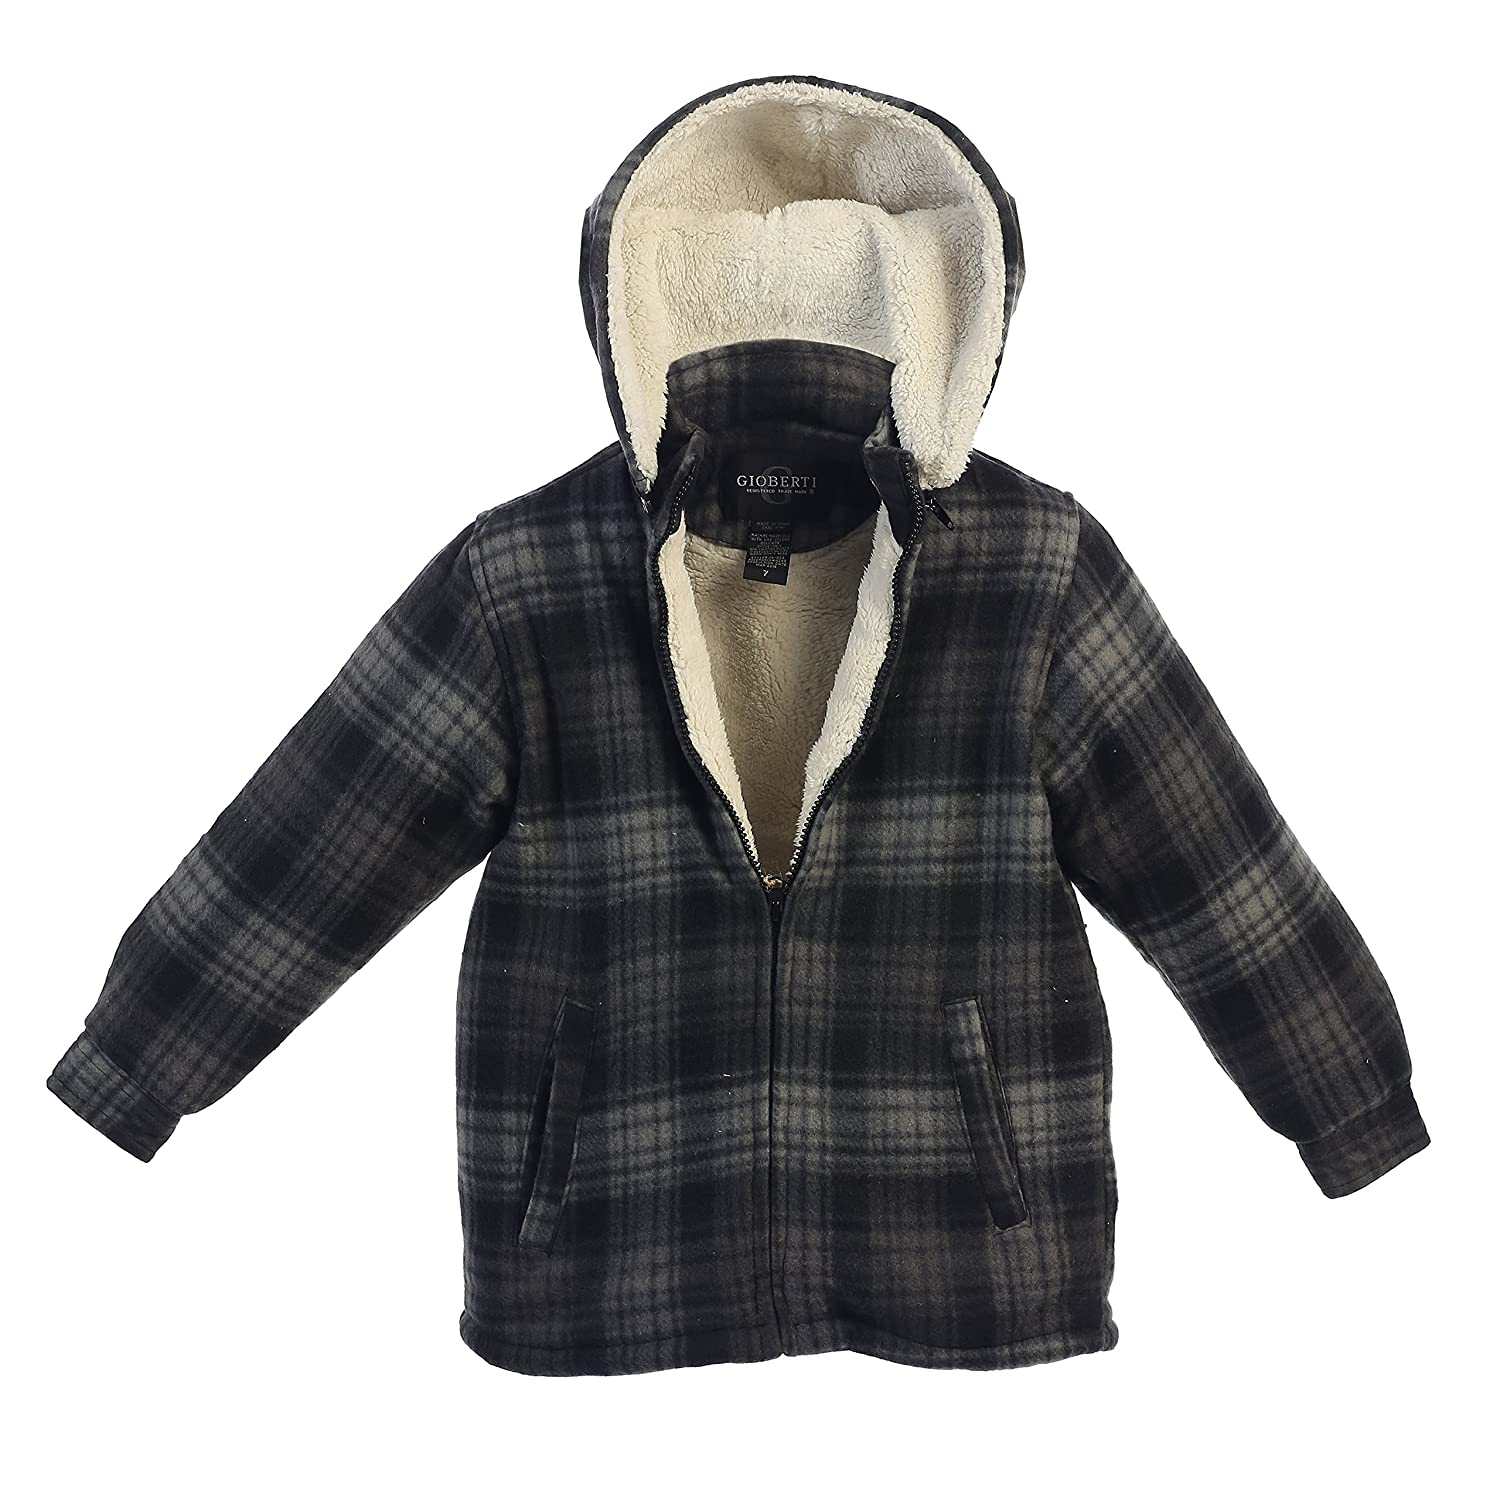 Gioberti Boys Flannel Jacket with Sherpa Lining, Removable Hood Black Hash 3T JA-203:11-3T